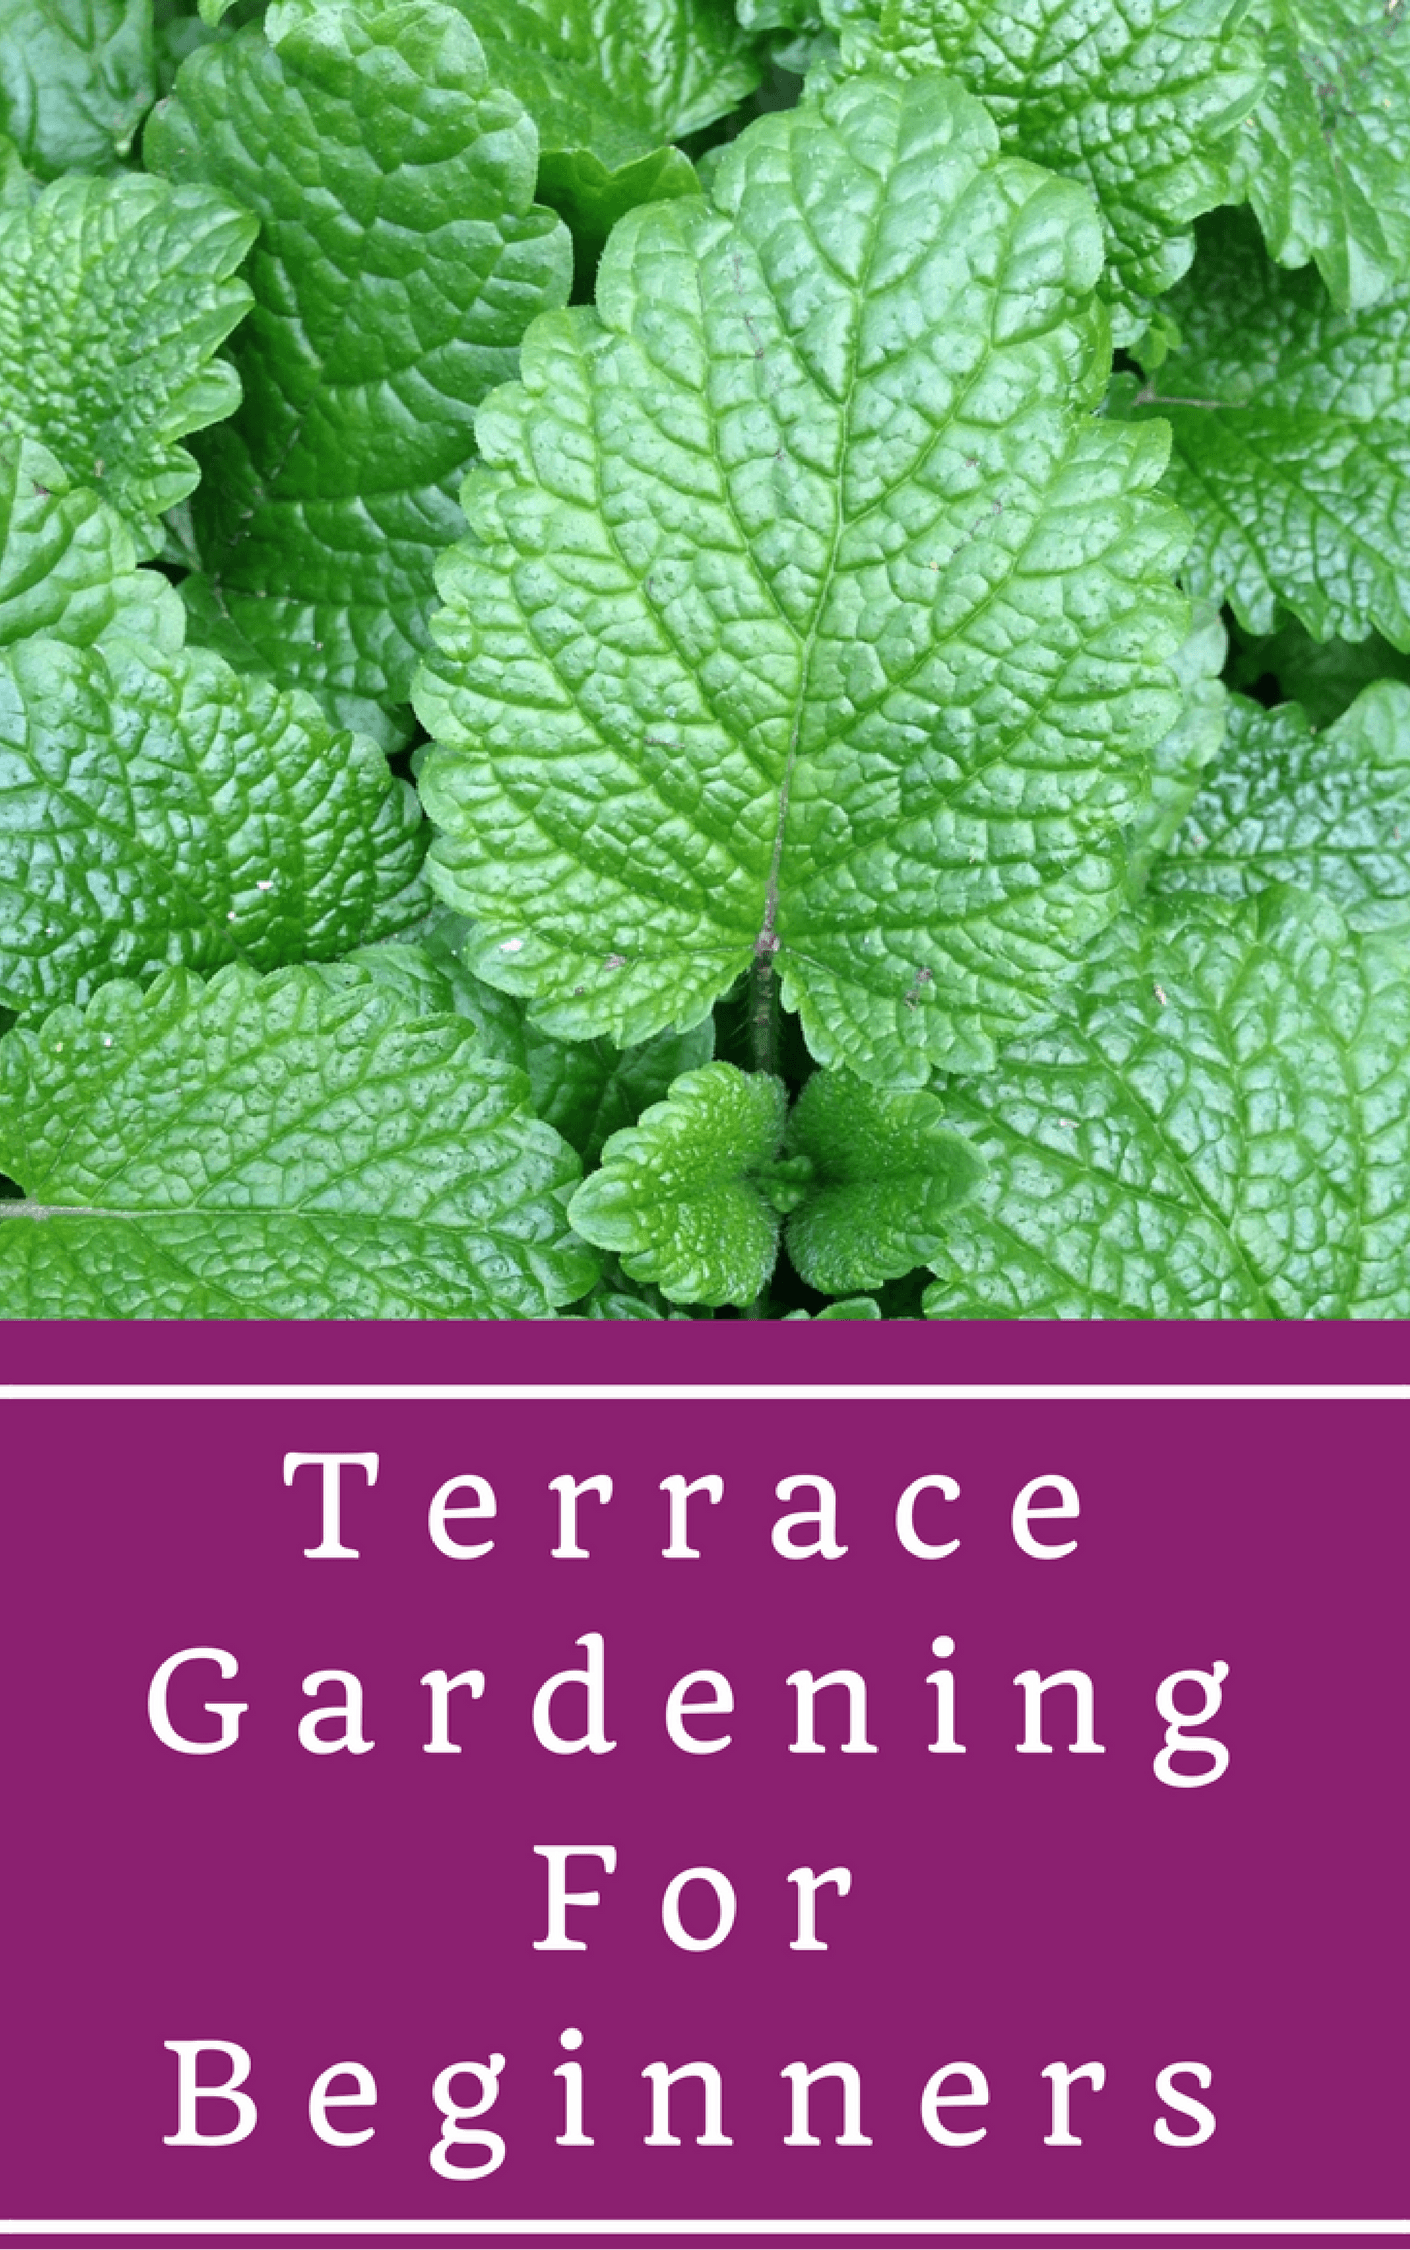 Terrace Gardening For Beginners The Step By Step Guide